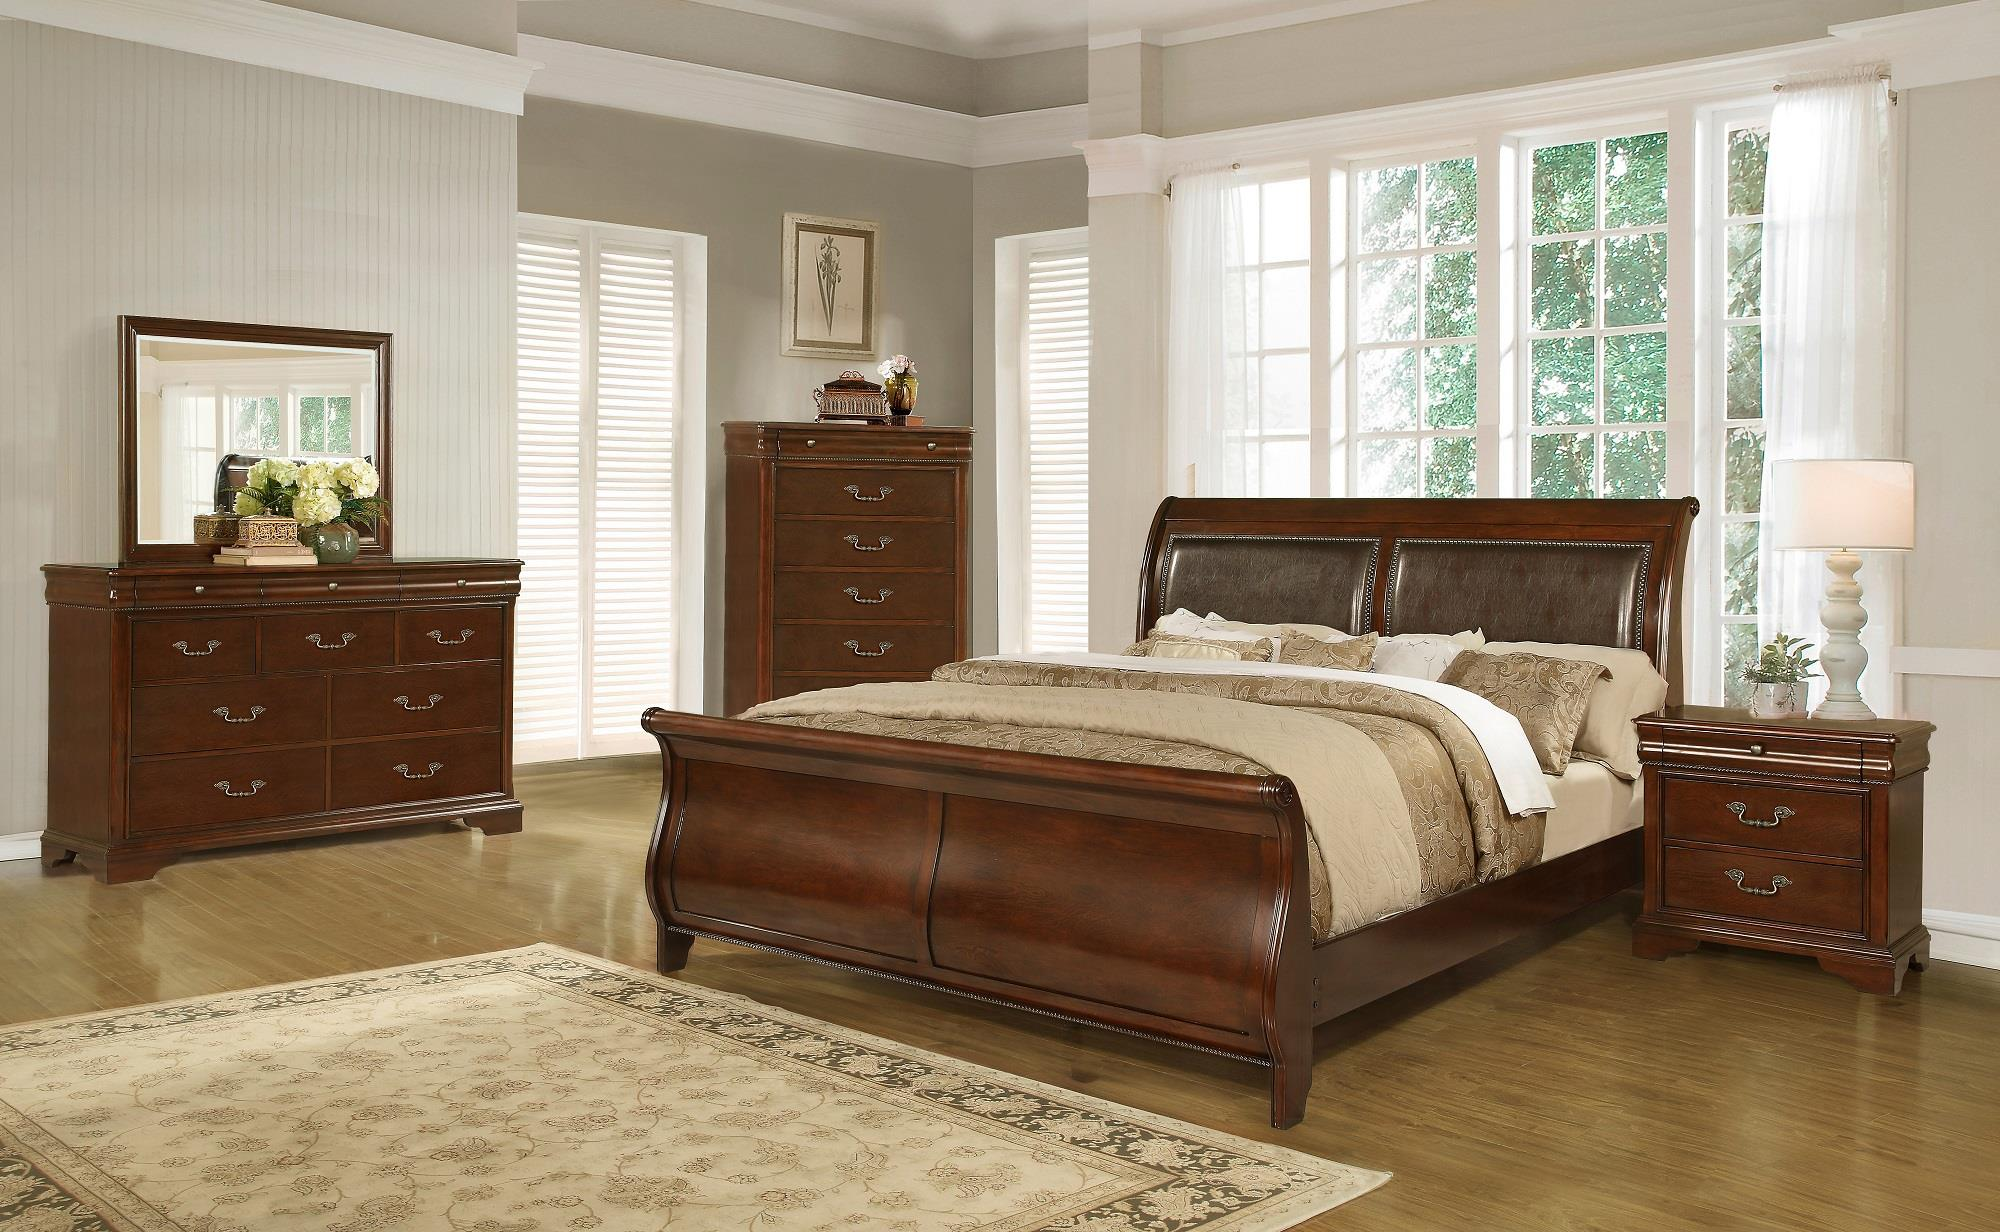 Lifestyle Bedroom Furniture Lifestyle C4116a Traditional Queen Sleigh Bed Furniture Fair